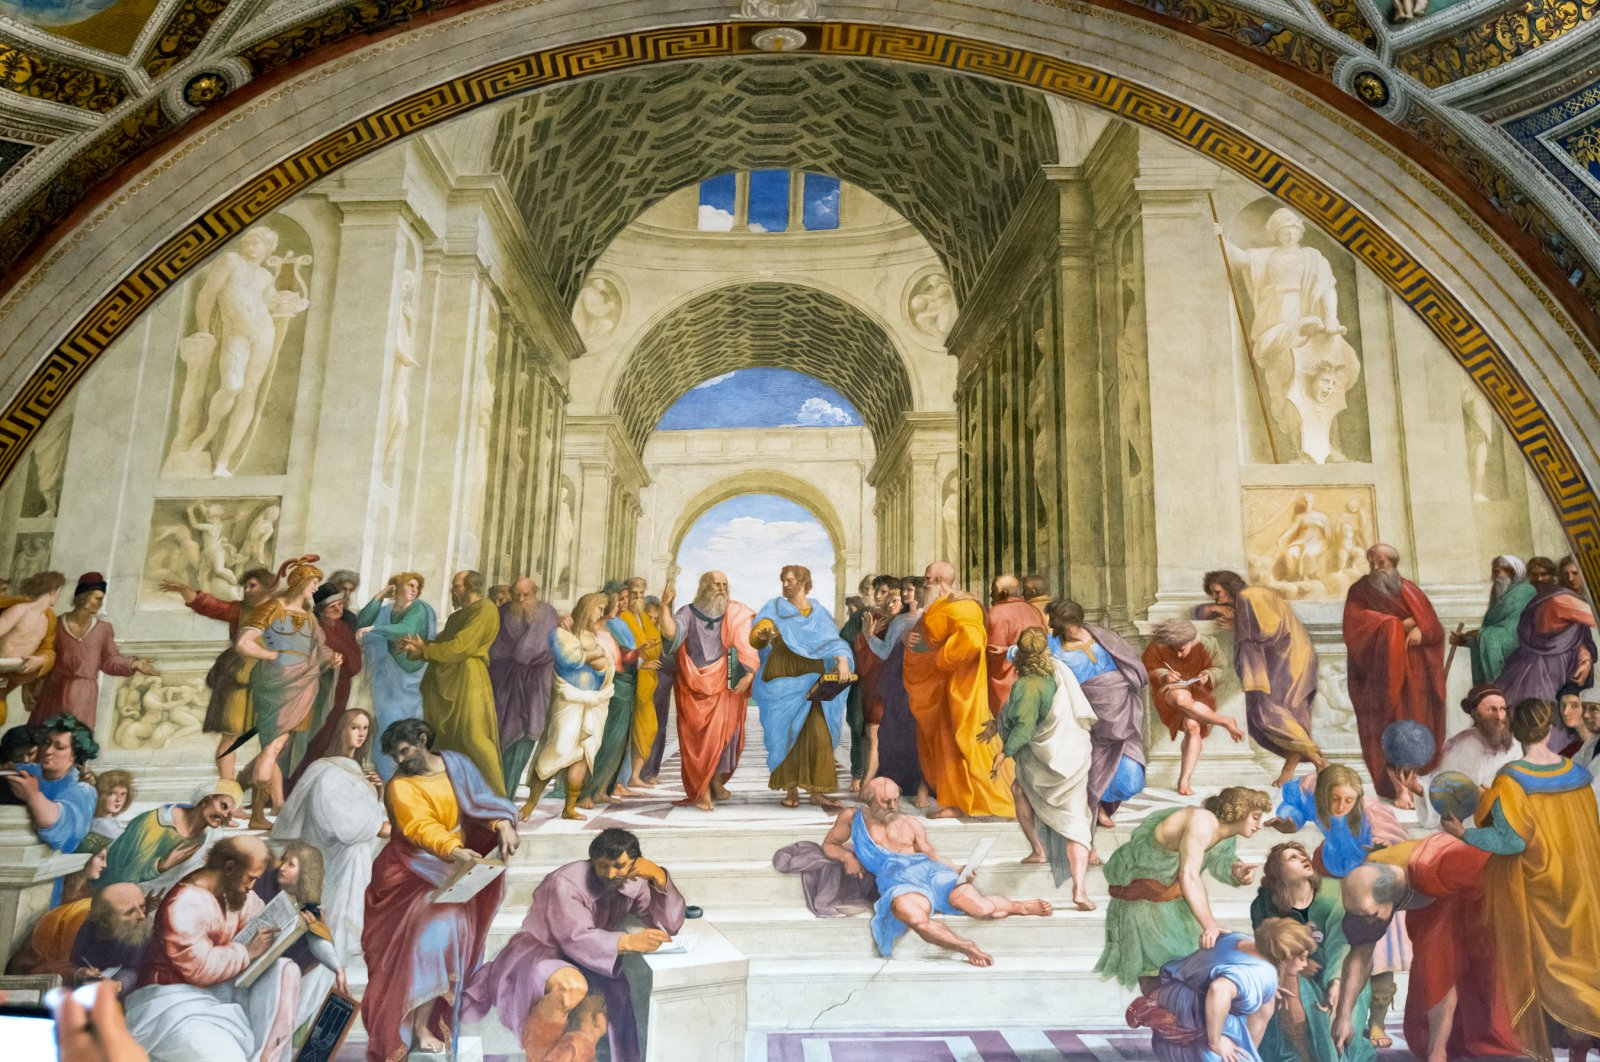 """""""The School of Athens,"""" Renaissance fresco by Raphael in the four Raphael Rooms, Vatican Museum, Italy. (shutterstock photo)"""